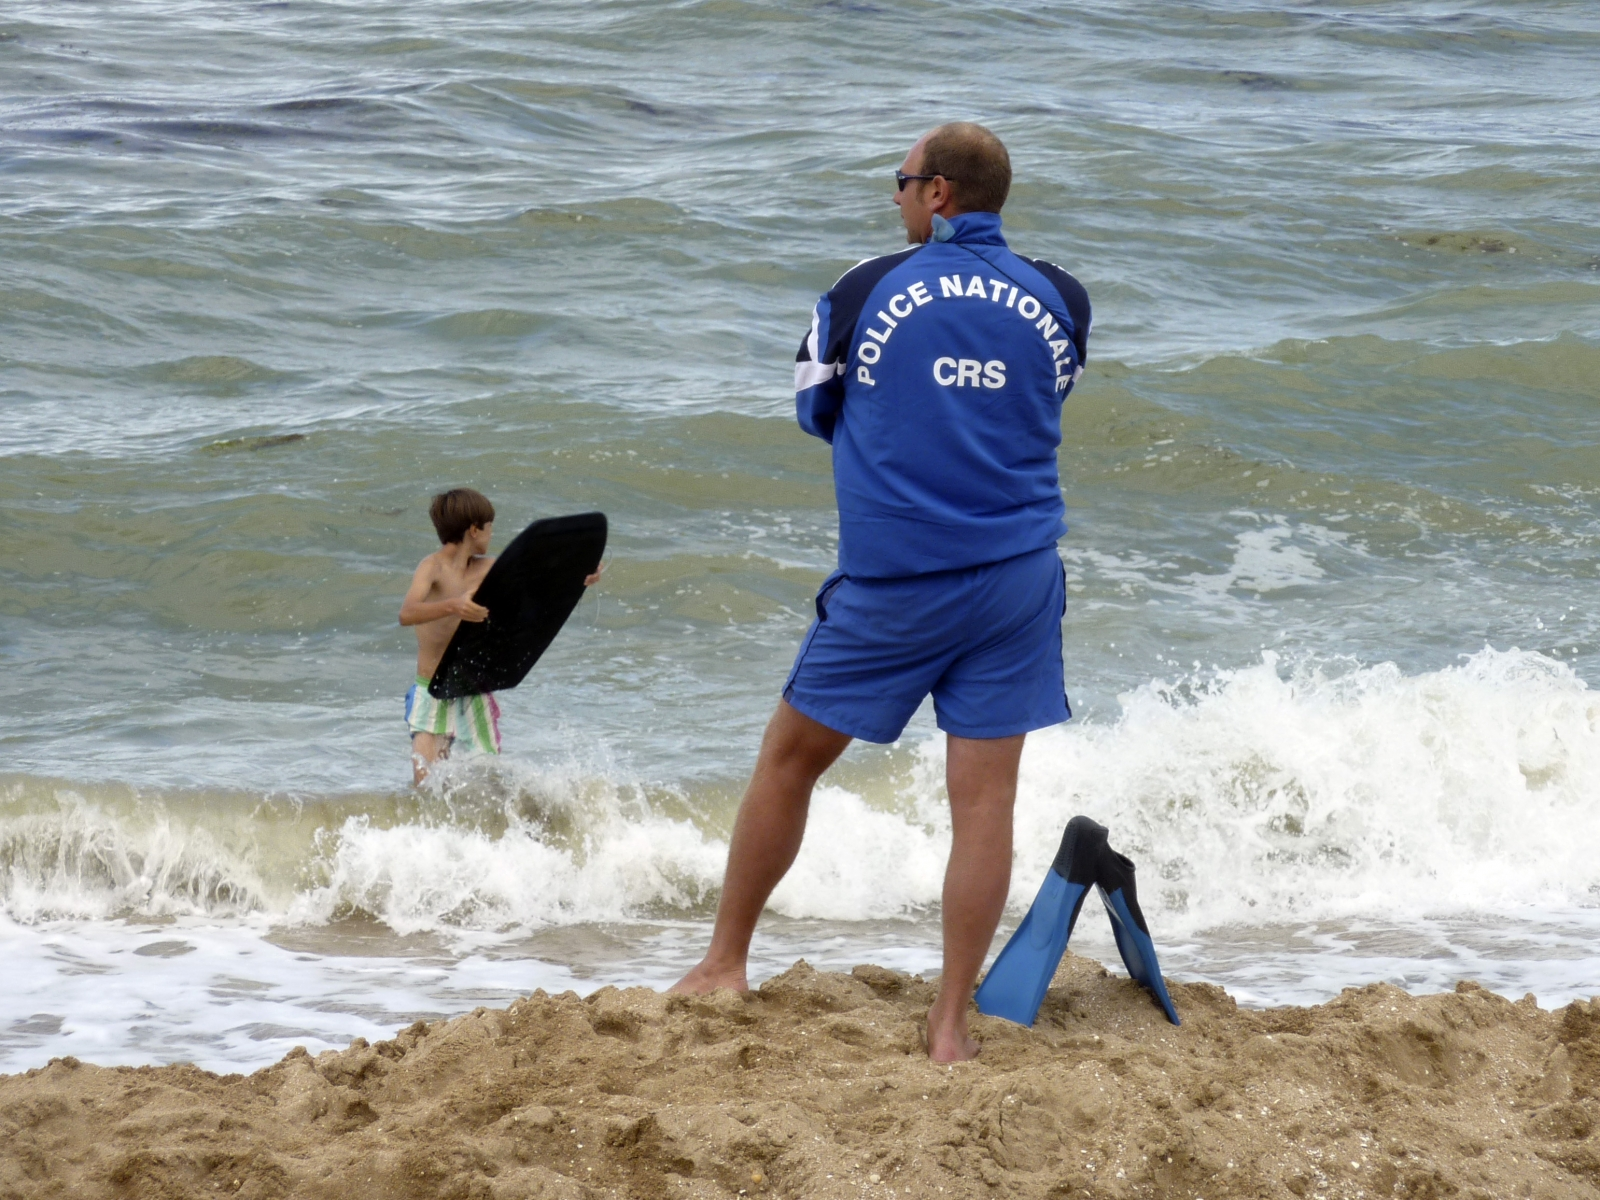 French lifeguards to carry guns